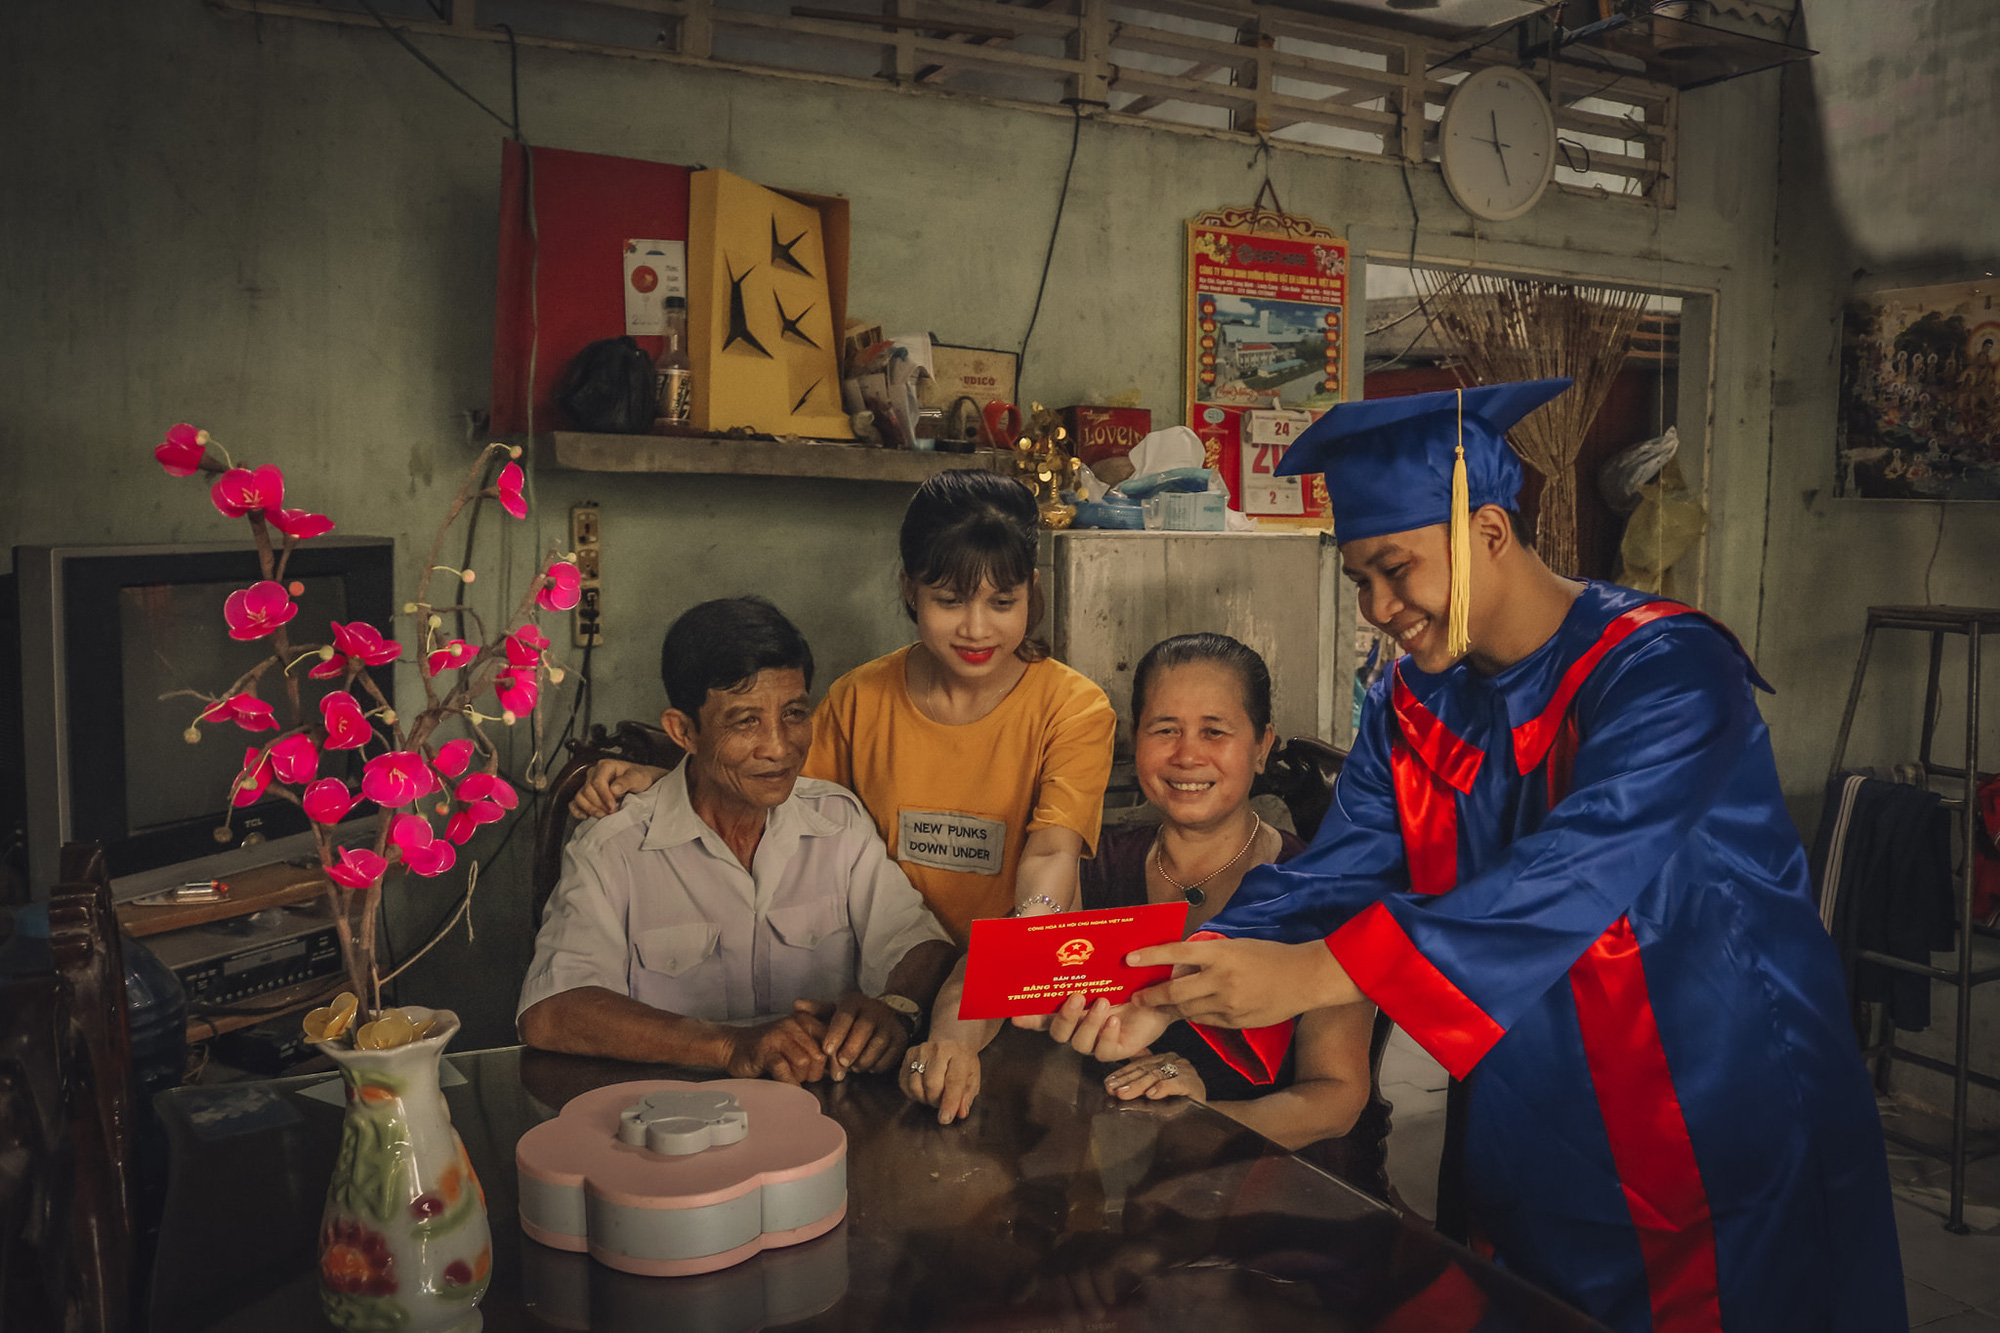 A student in a graduation gown is seen showing a high school diploma to his family. Photo: Pham Van Thong